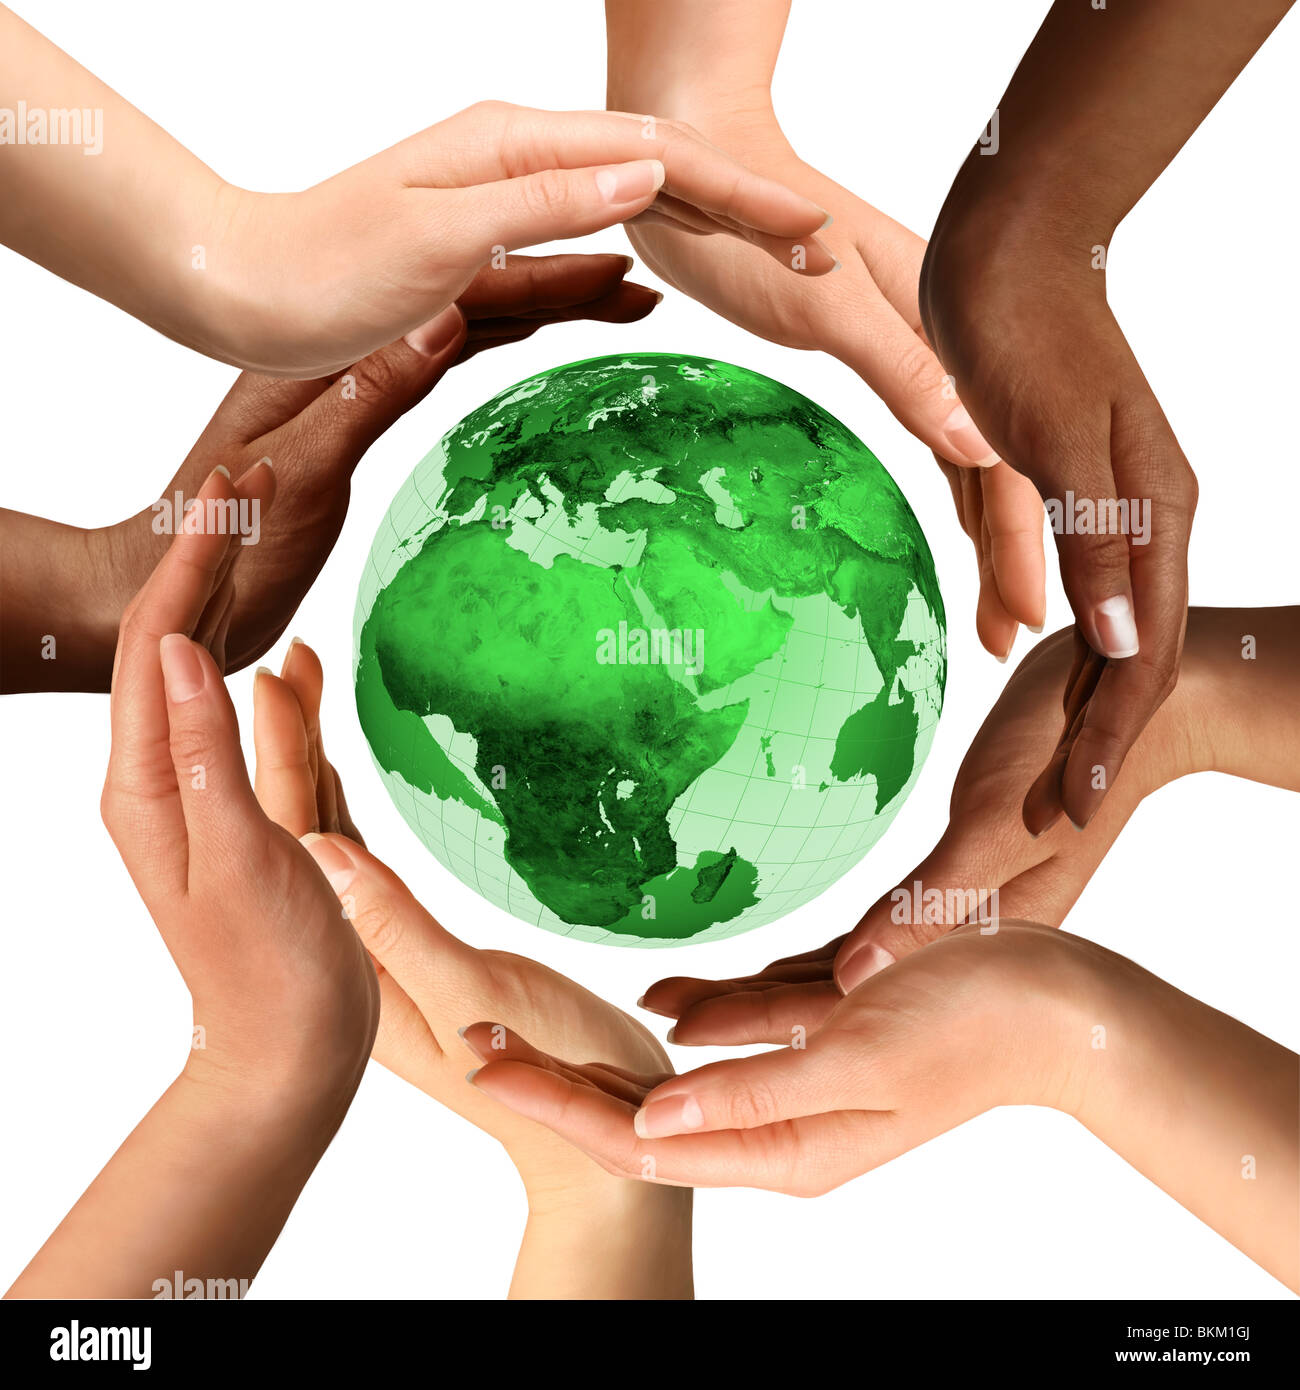 Conceptual Symbol Of A Green Earth Globe With Multiracial Human